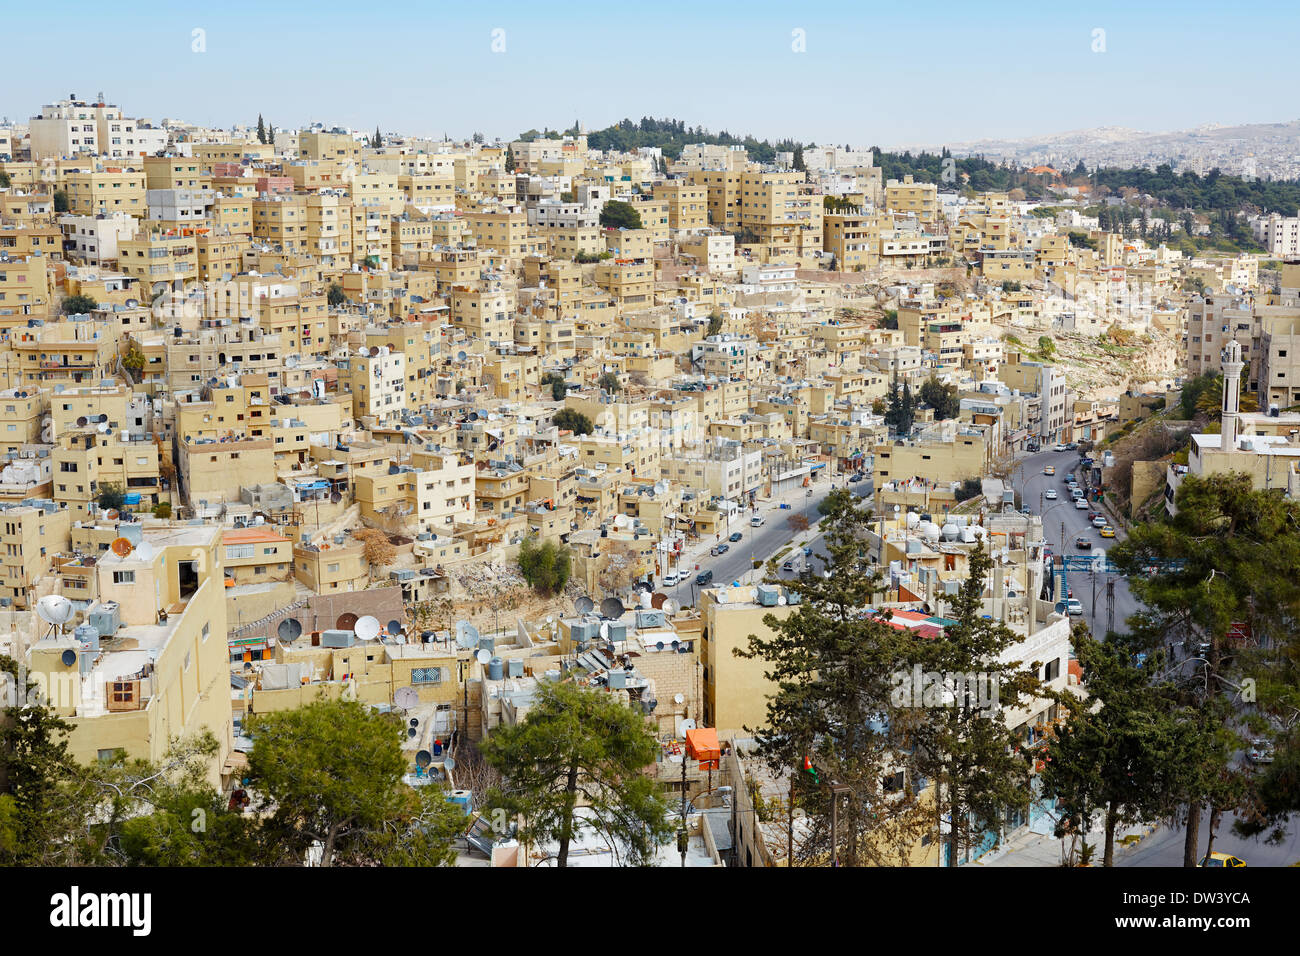 Amman city view of buildings and houses - Stock Image